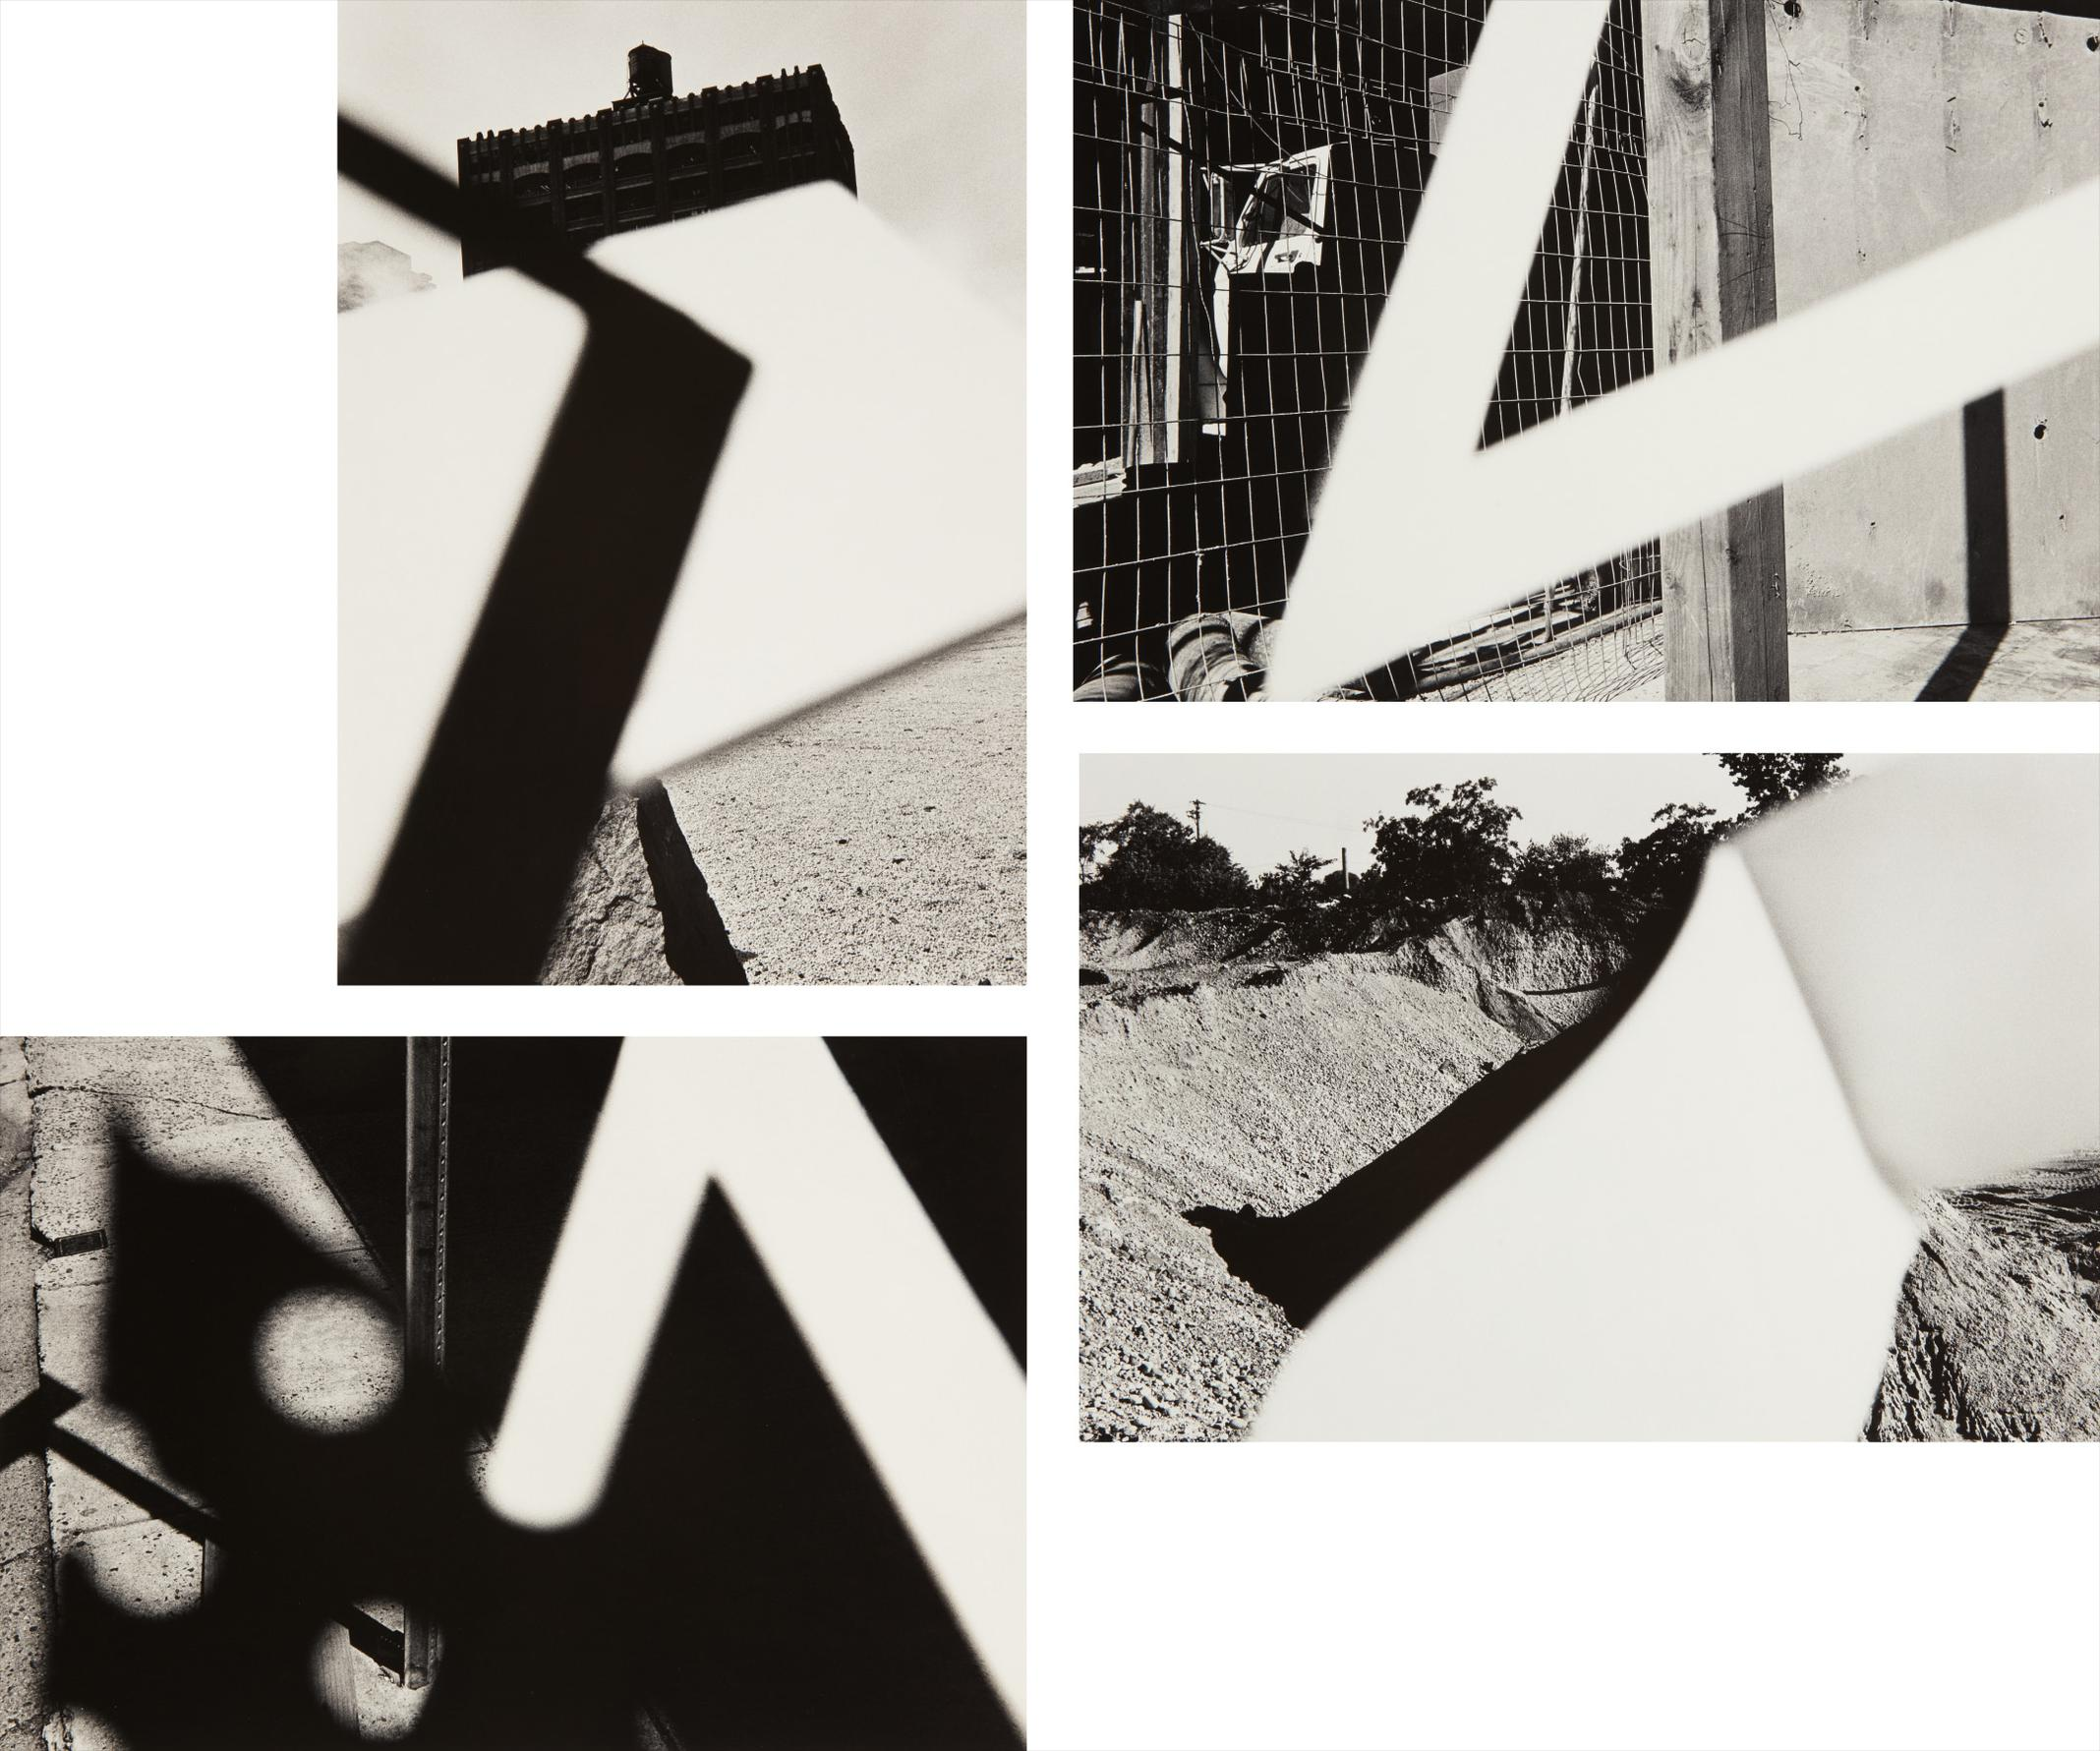 Ray Metzker-Selected Images From Pictus Interruptus-1980